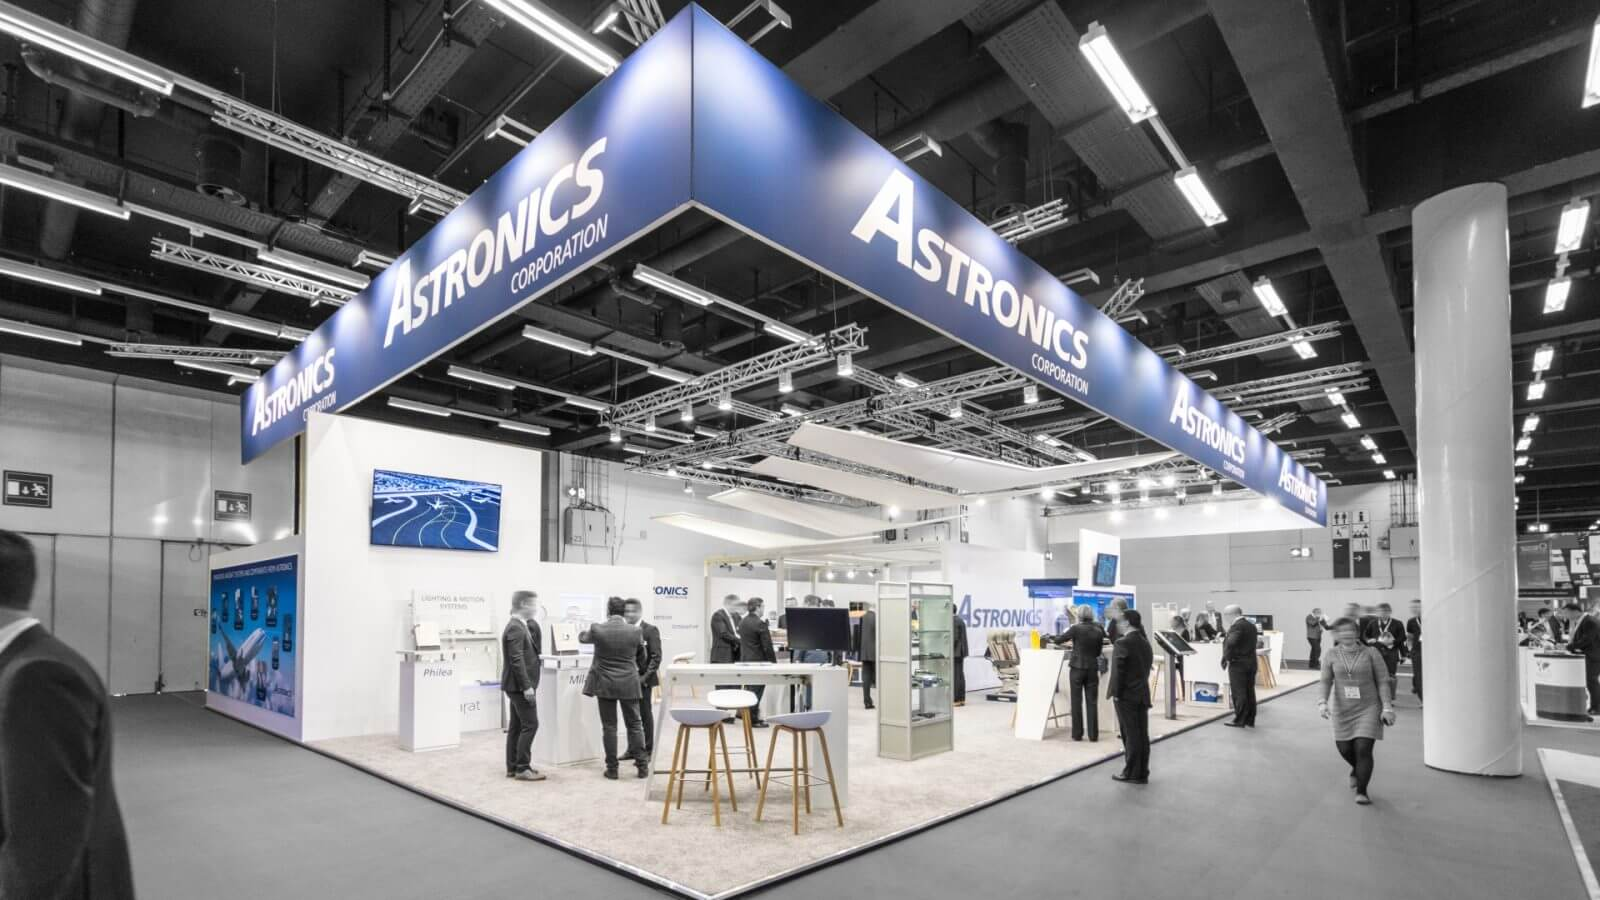 Astronics<br>295 m²<br>Aircraft Interiors Expo